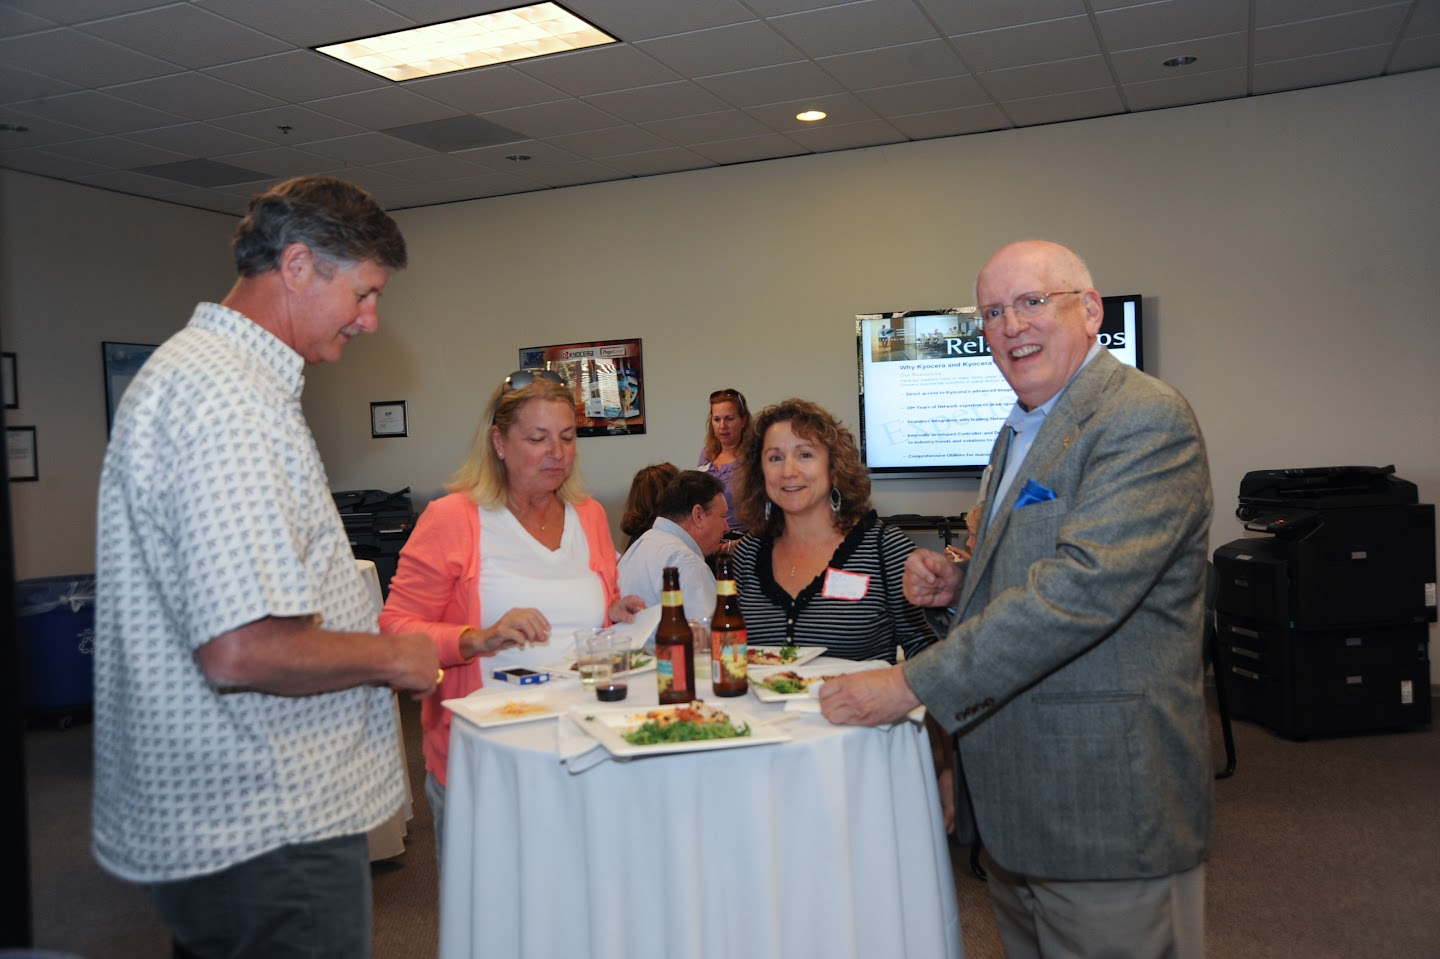 Rotary Means Business at Discovery Office with Rosso Pizzeria - DSC_6779.jpg